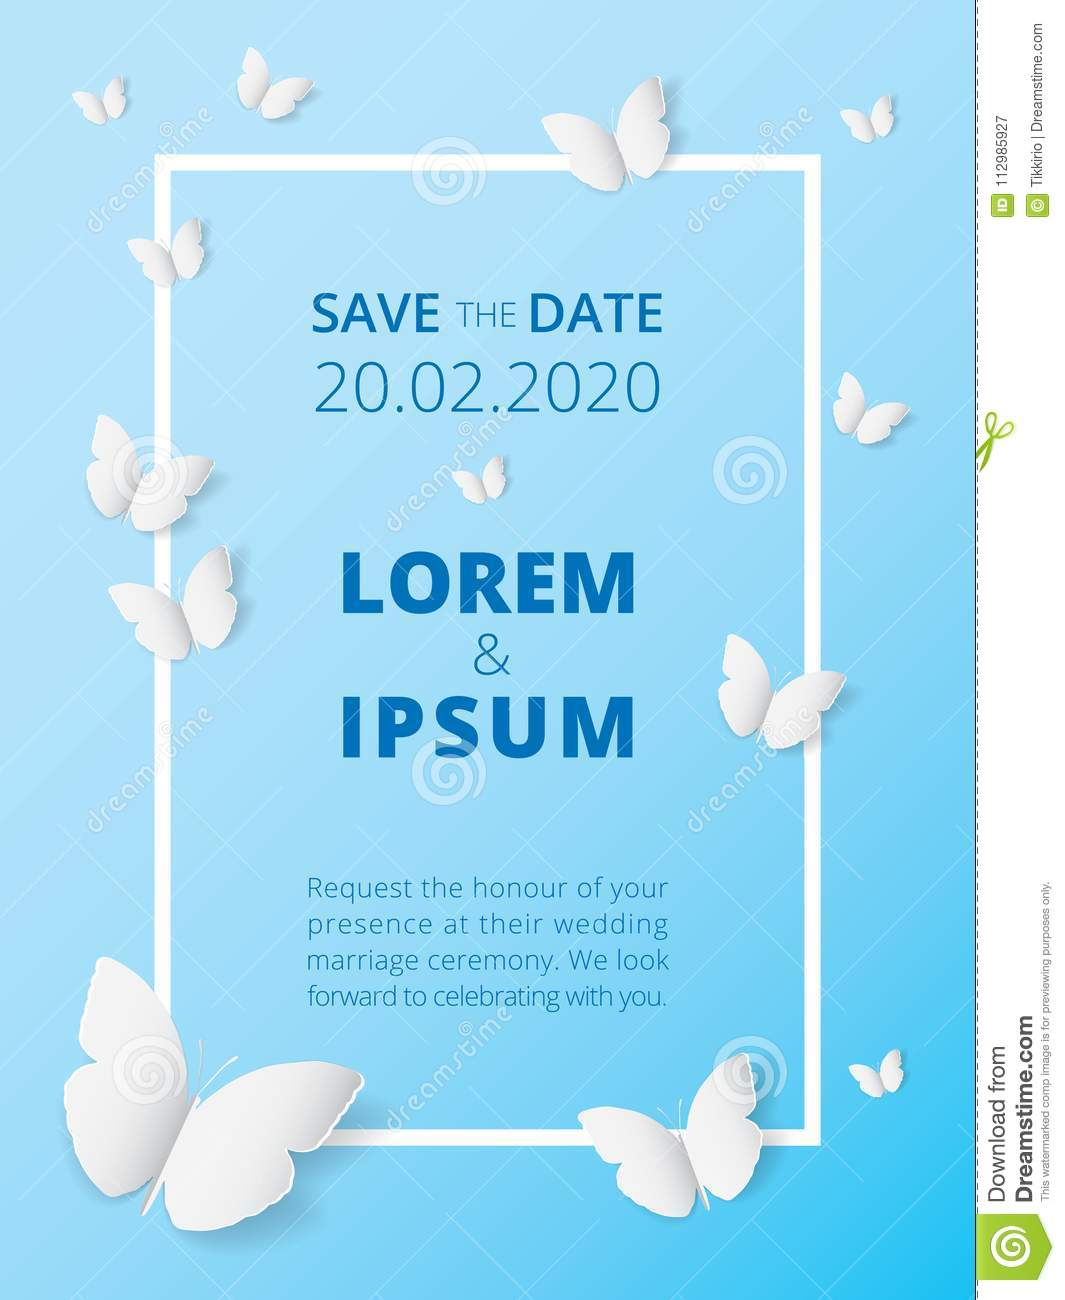 White butterfly paper art icon on blue label background, wedding card invitation printing template.